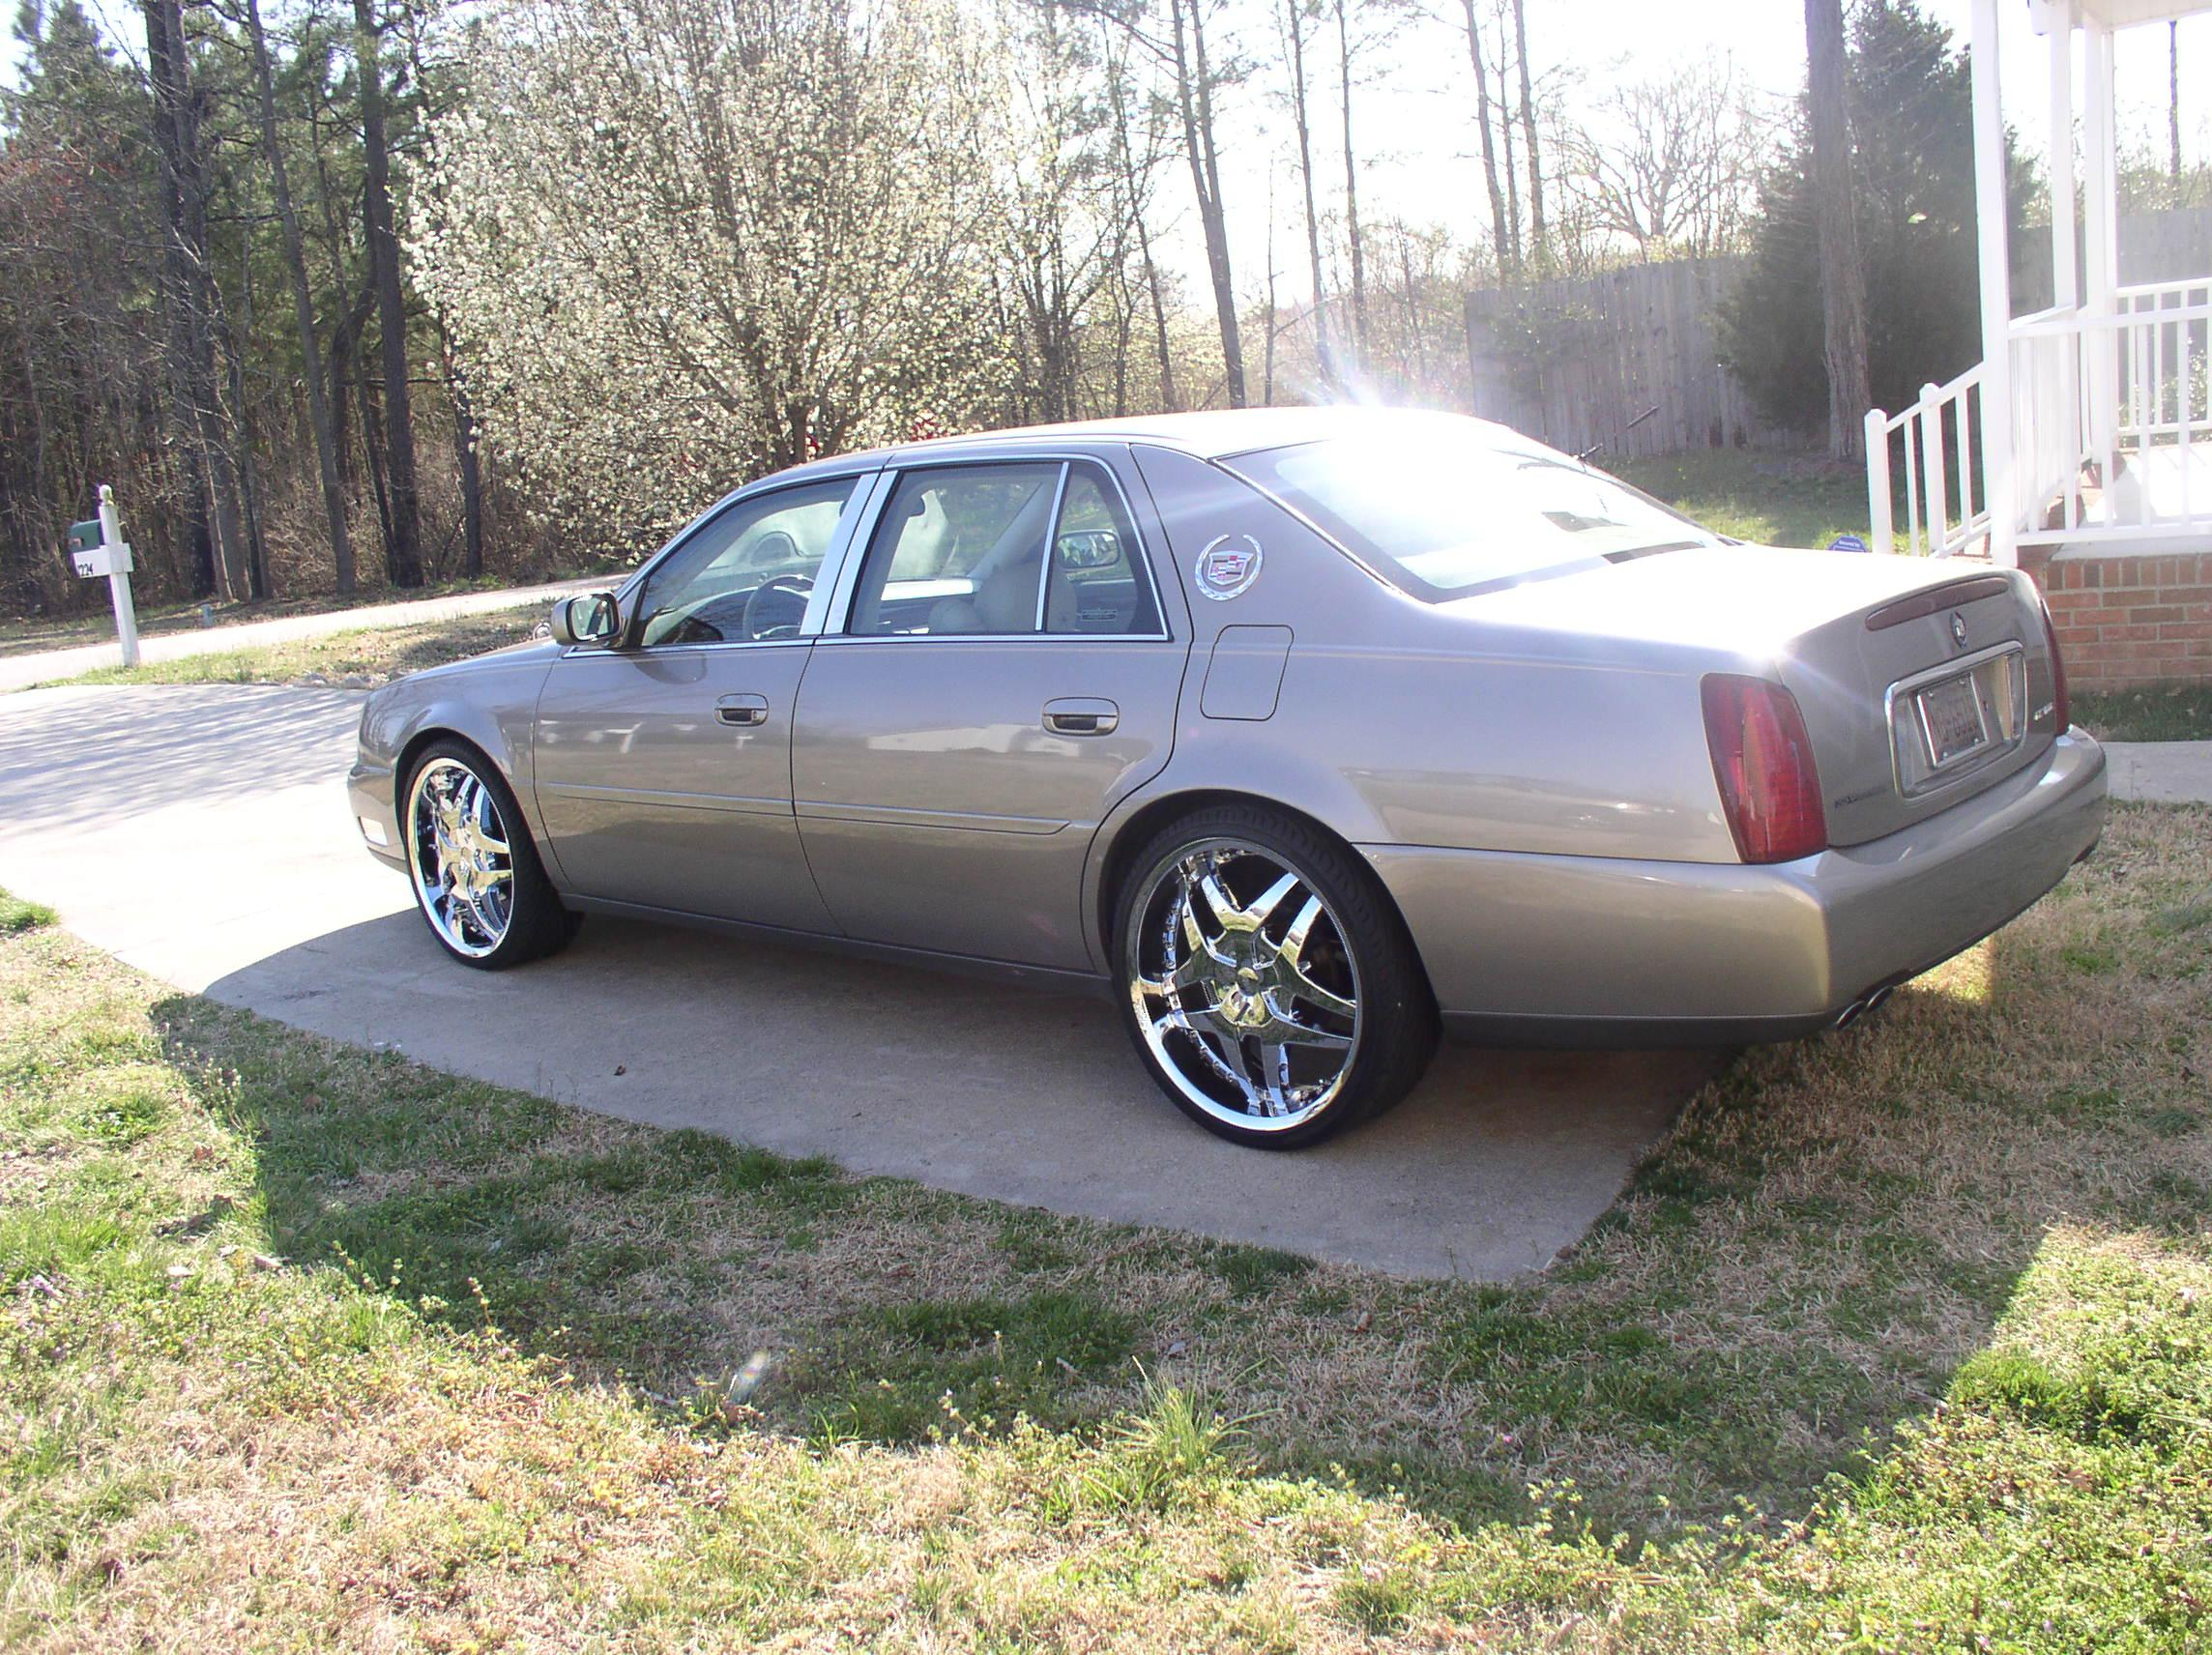 bland231 2001 cadillac devilledhs sedan 4d specs photos modification info at cardomain cardomain